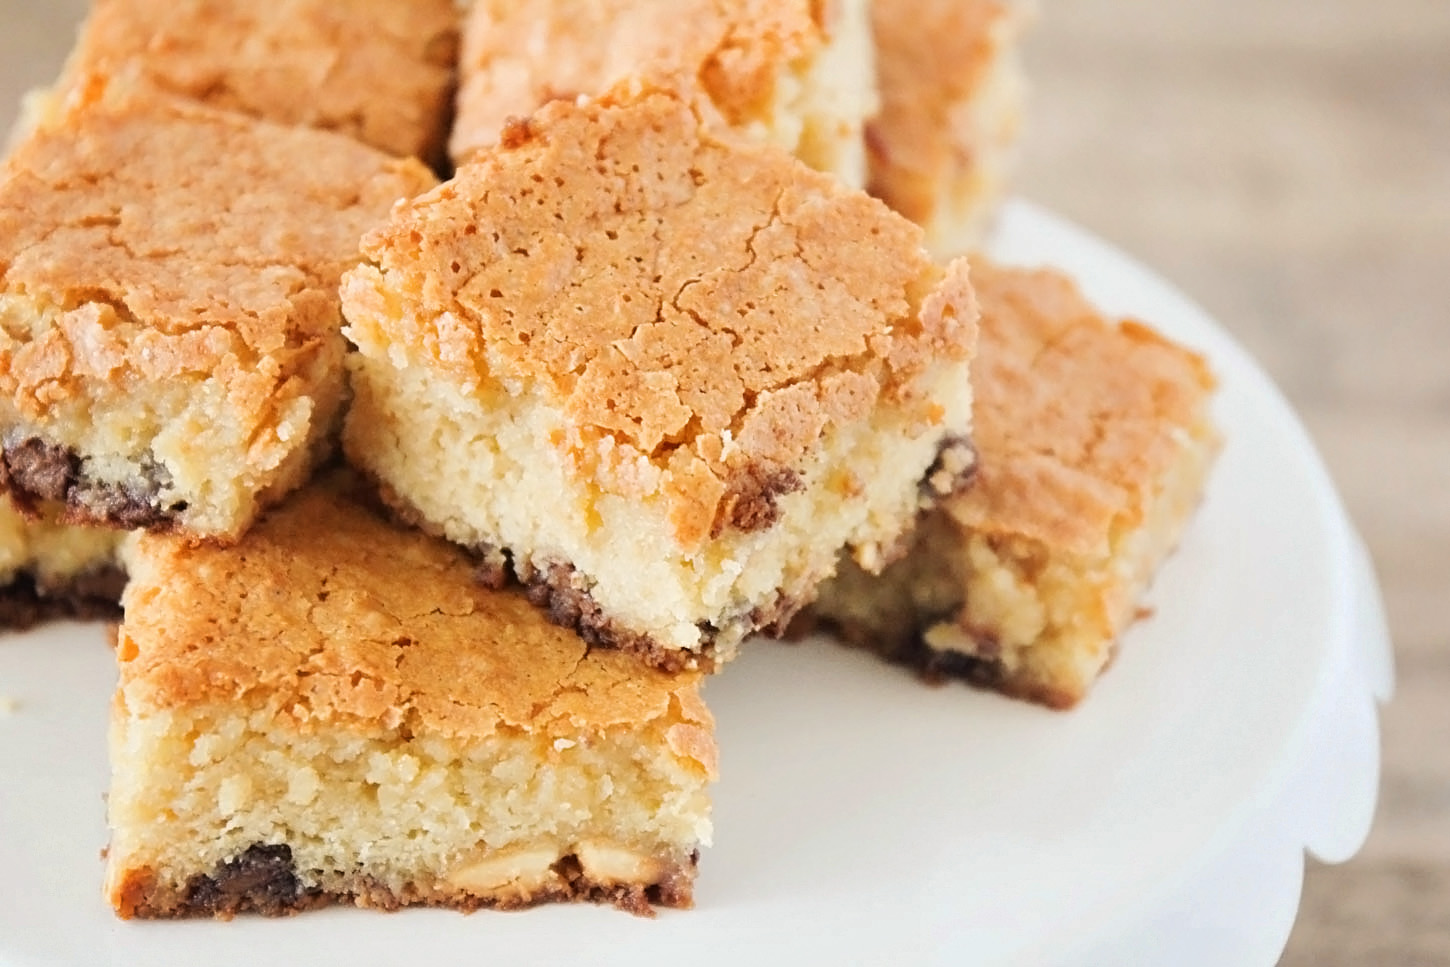 Soft, chewy and oh so sweet these Decadent White Chocolate Brownies go above and beyond any brownie you've ever tasted. For a special occasion or just because, this dessert is one that will leave your family and friends wanting more!